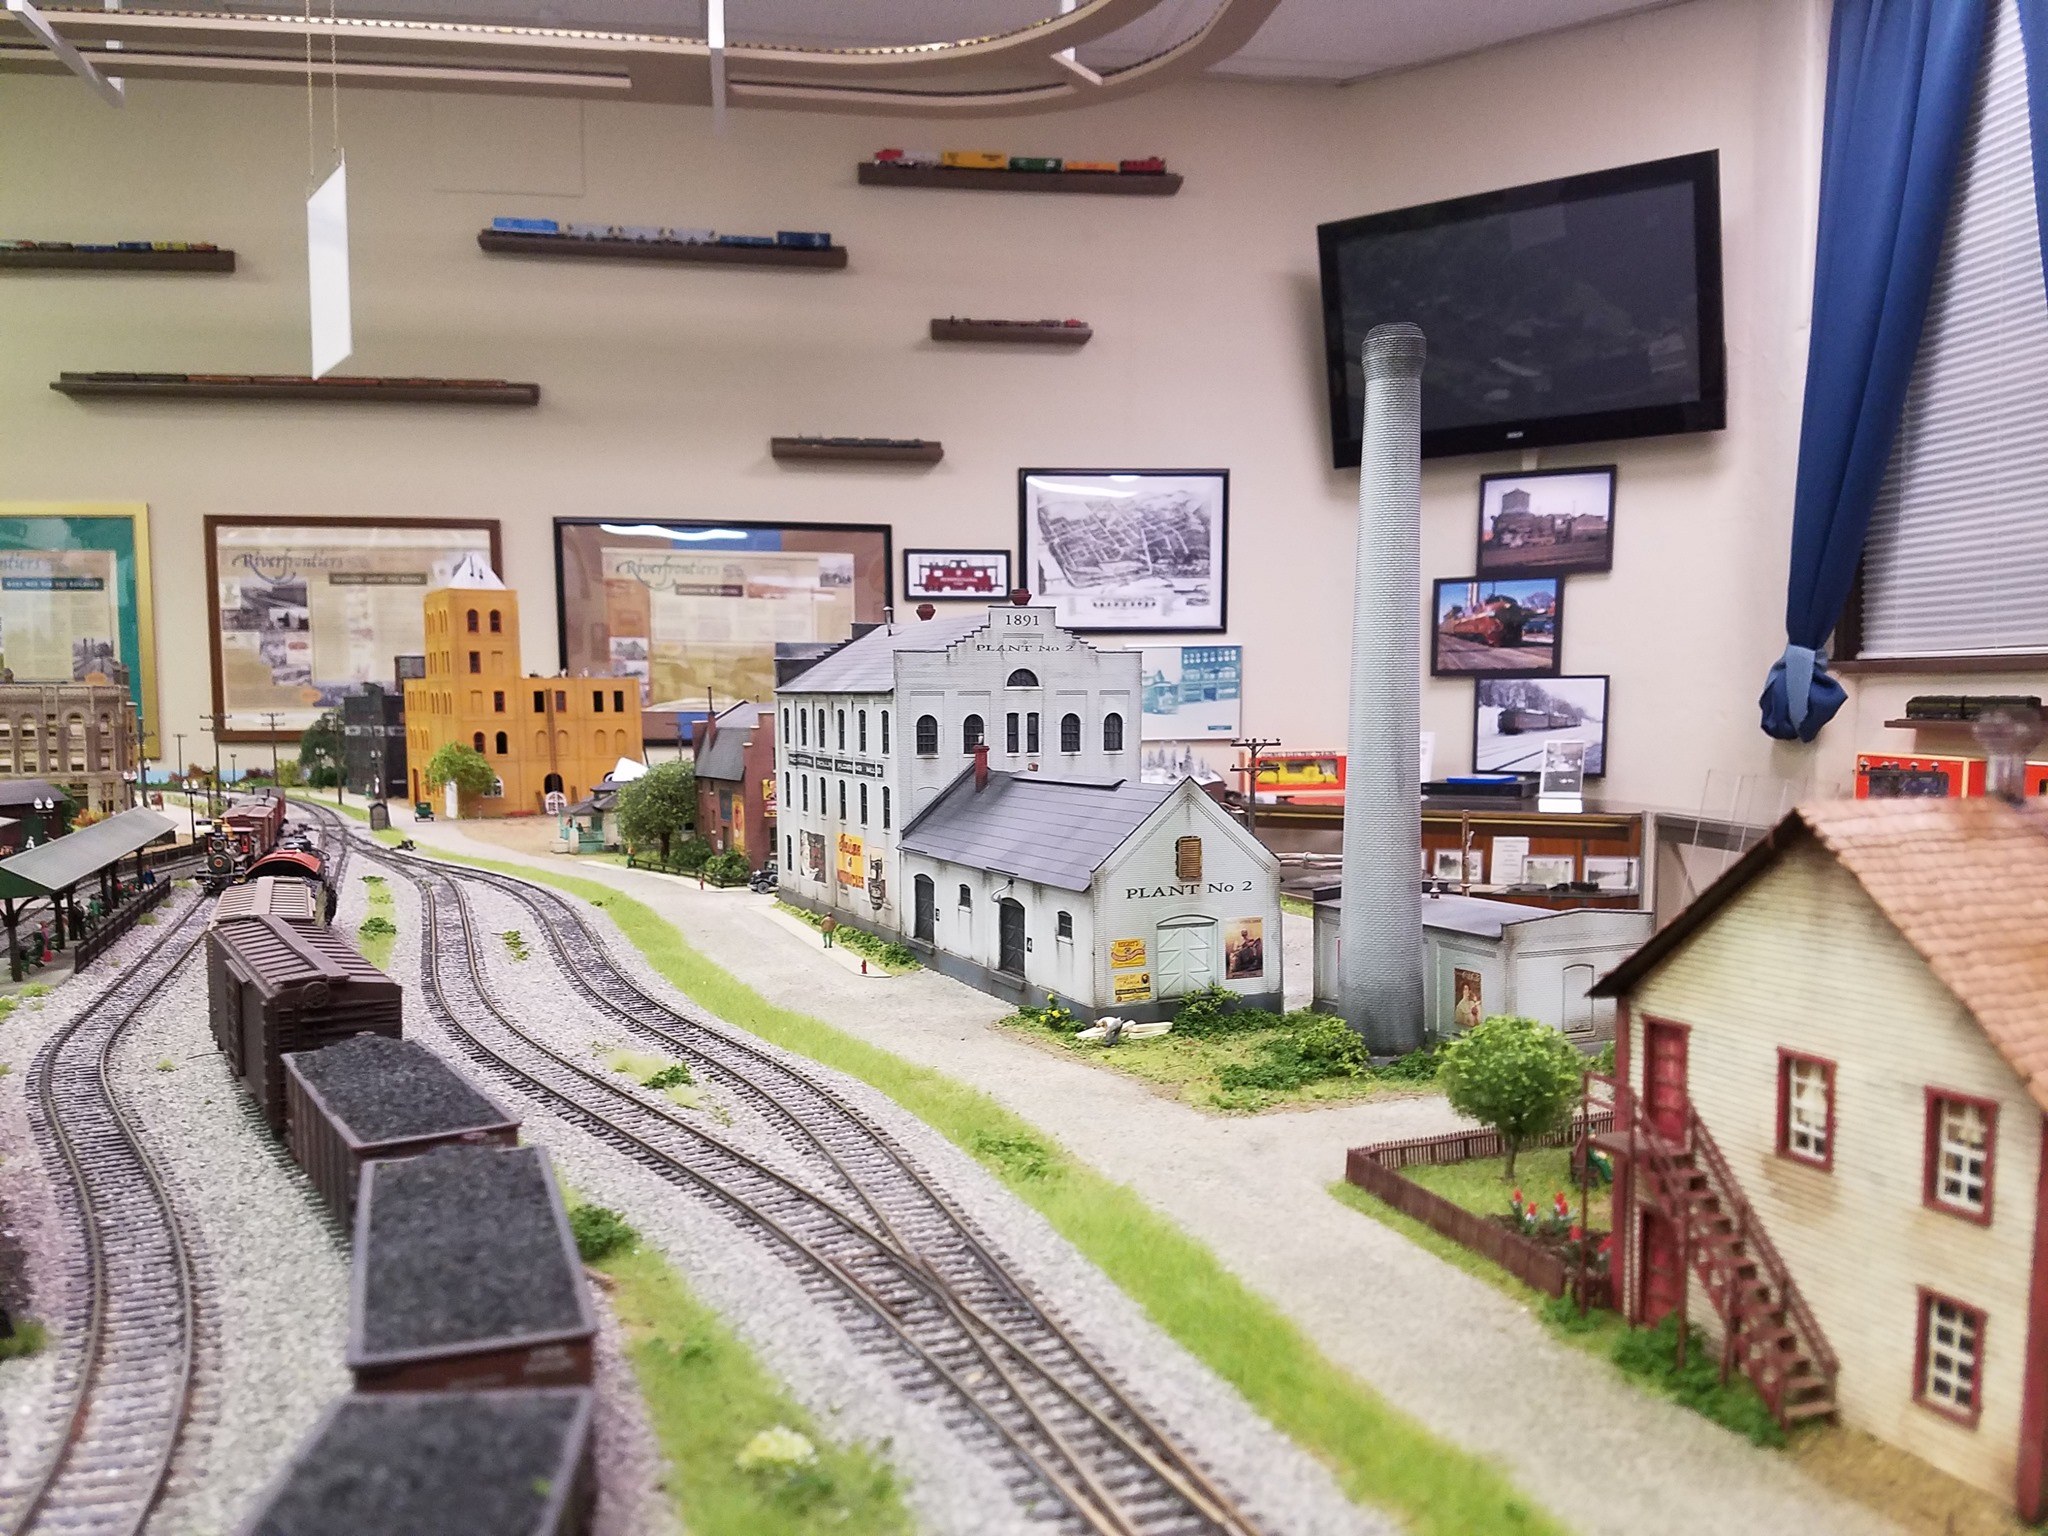 5th Annual Holiday Model Railroad Open House